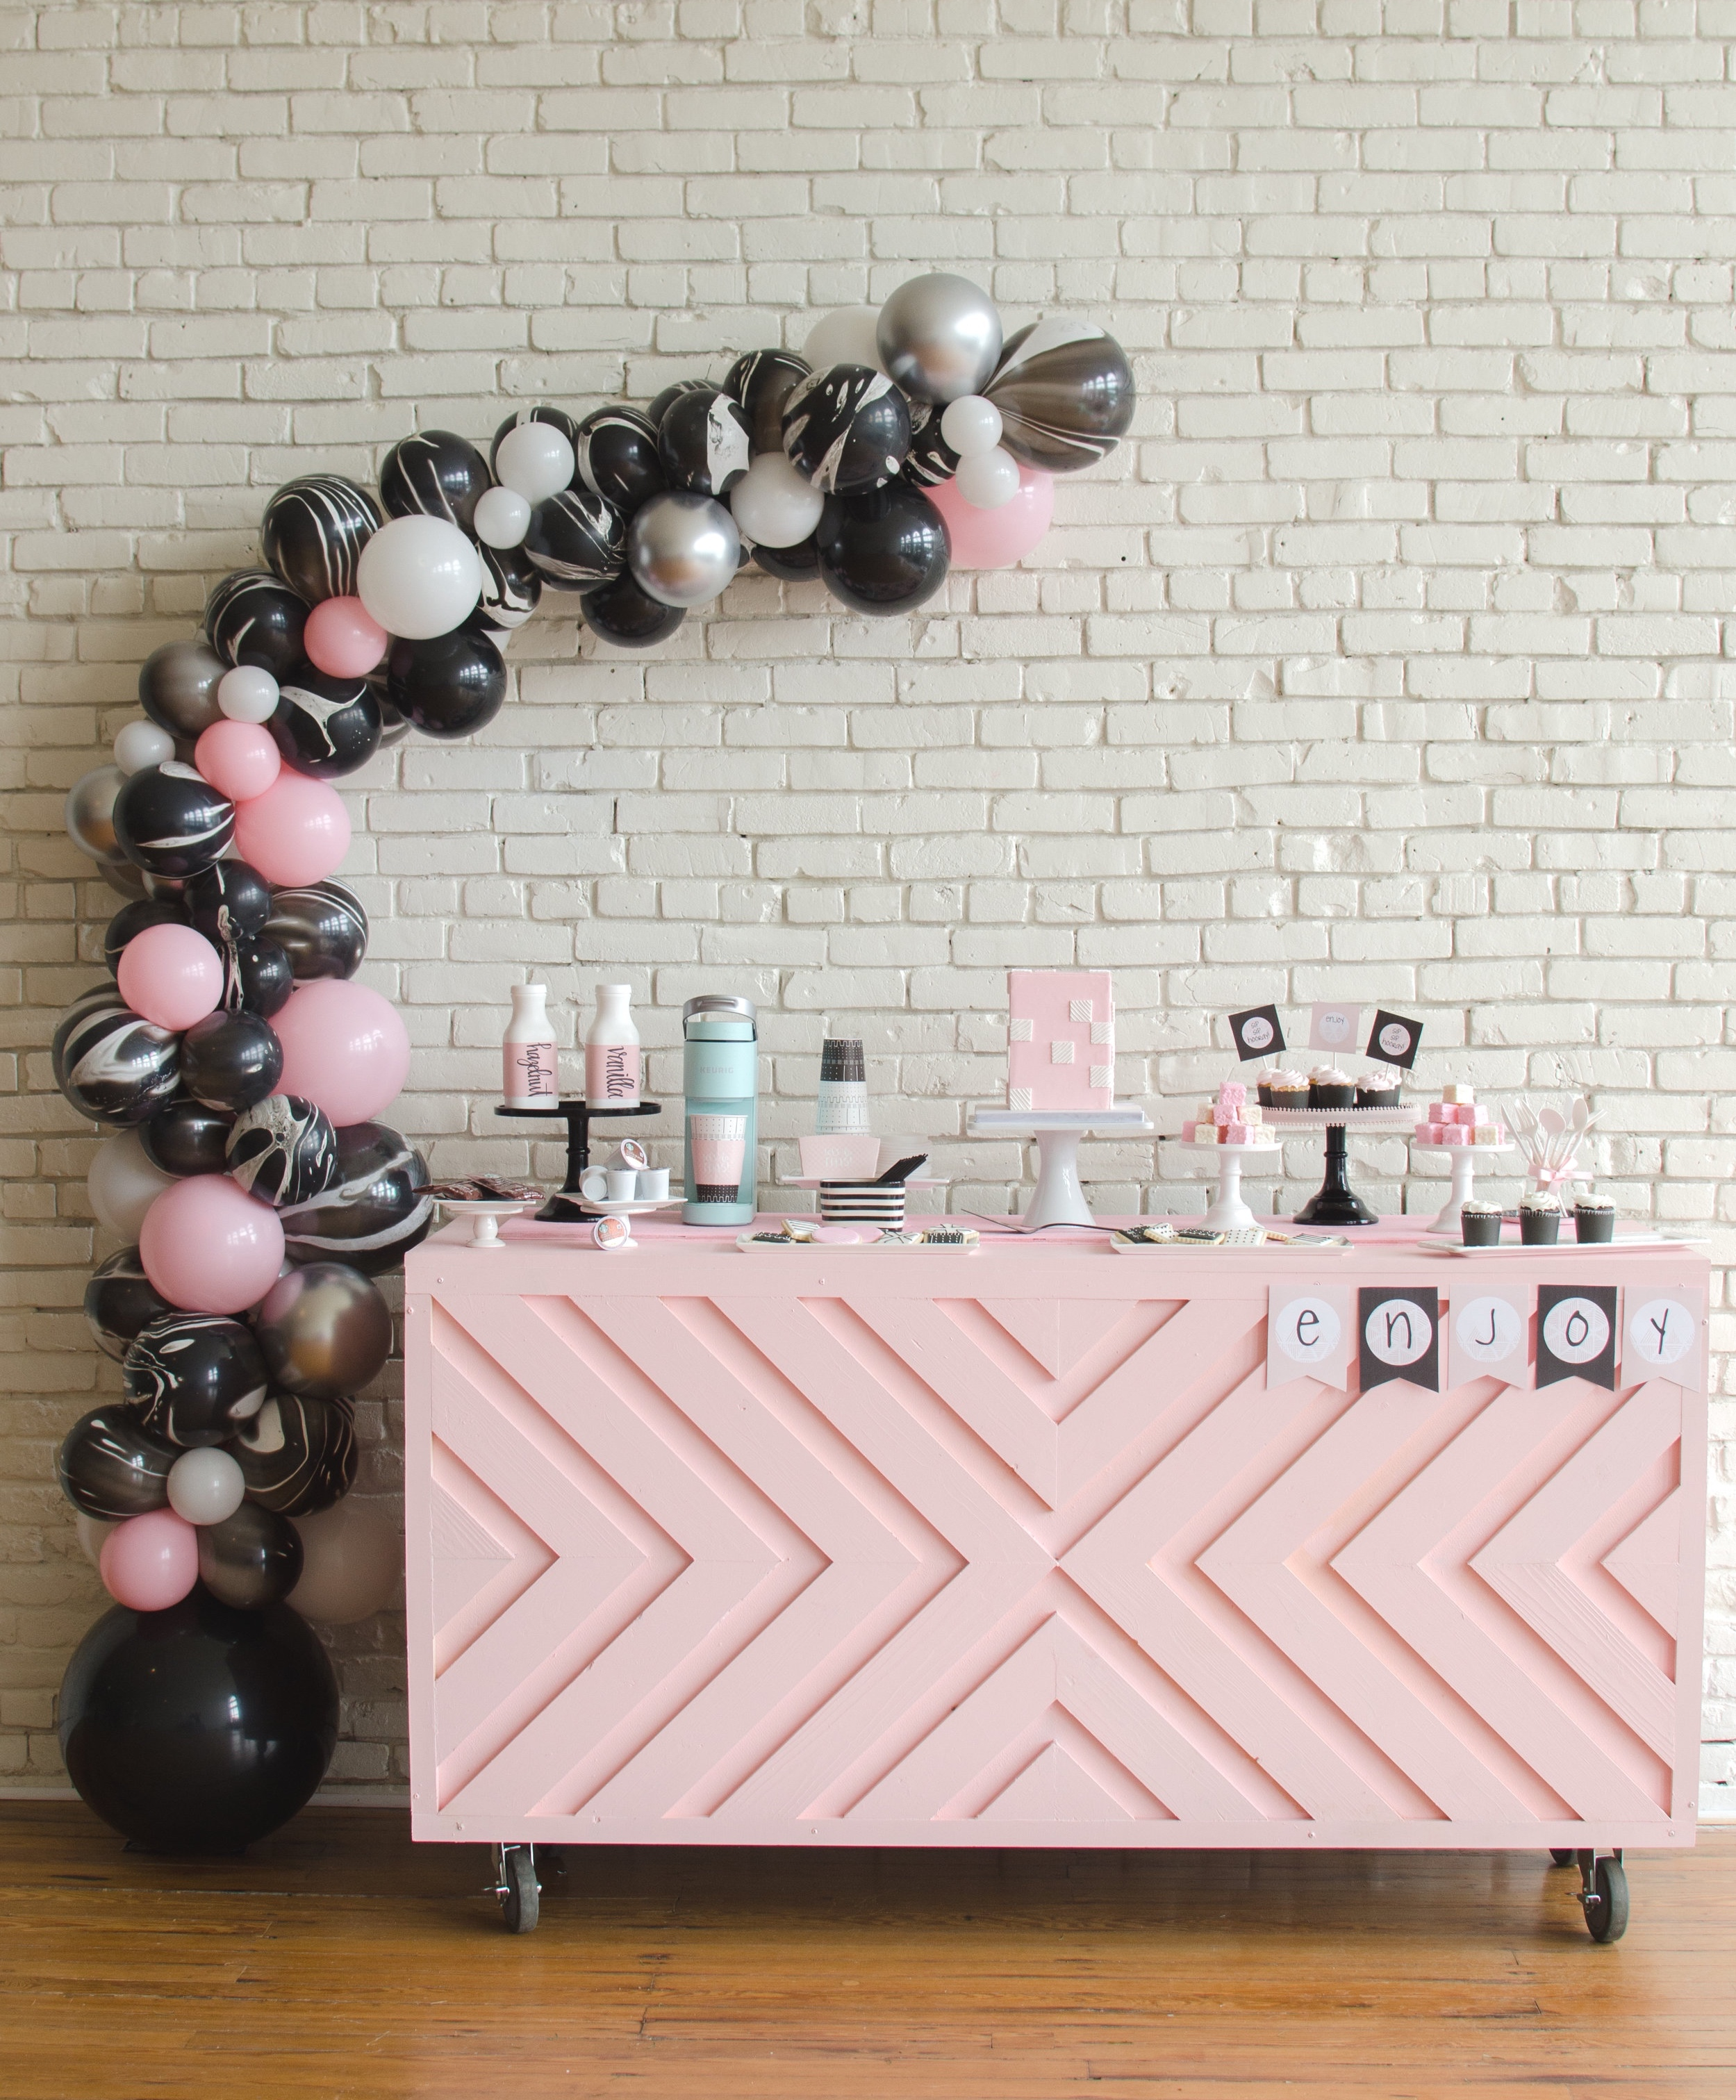 Adorable Galentine's Day Ladies Coffee and Desserts Party idea from Austin based party stylist Mint Event Design.